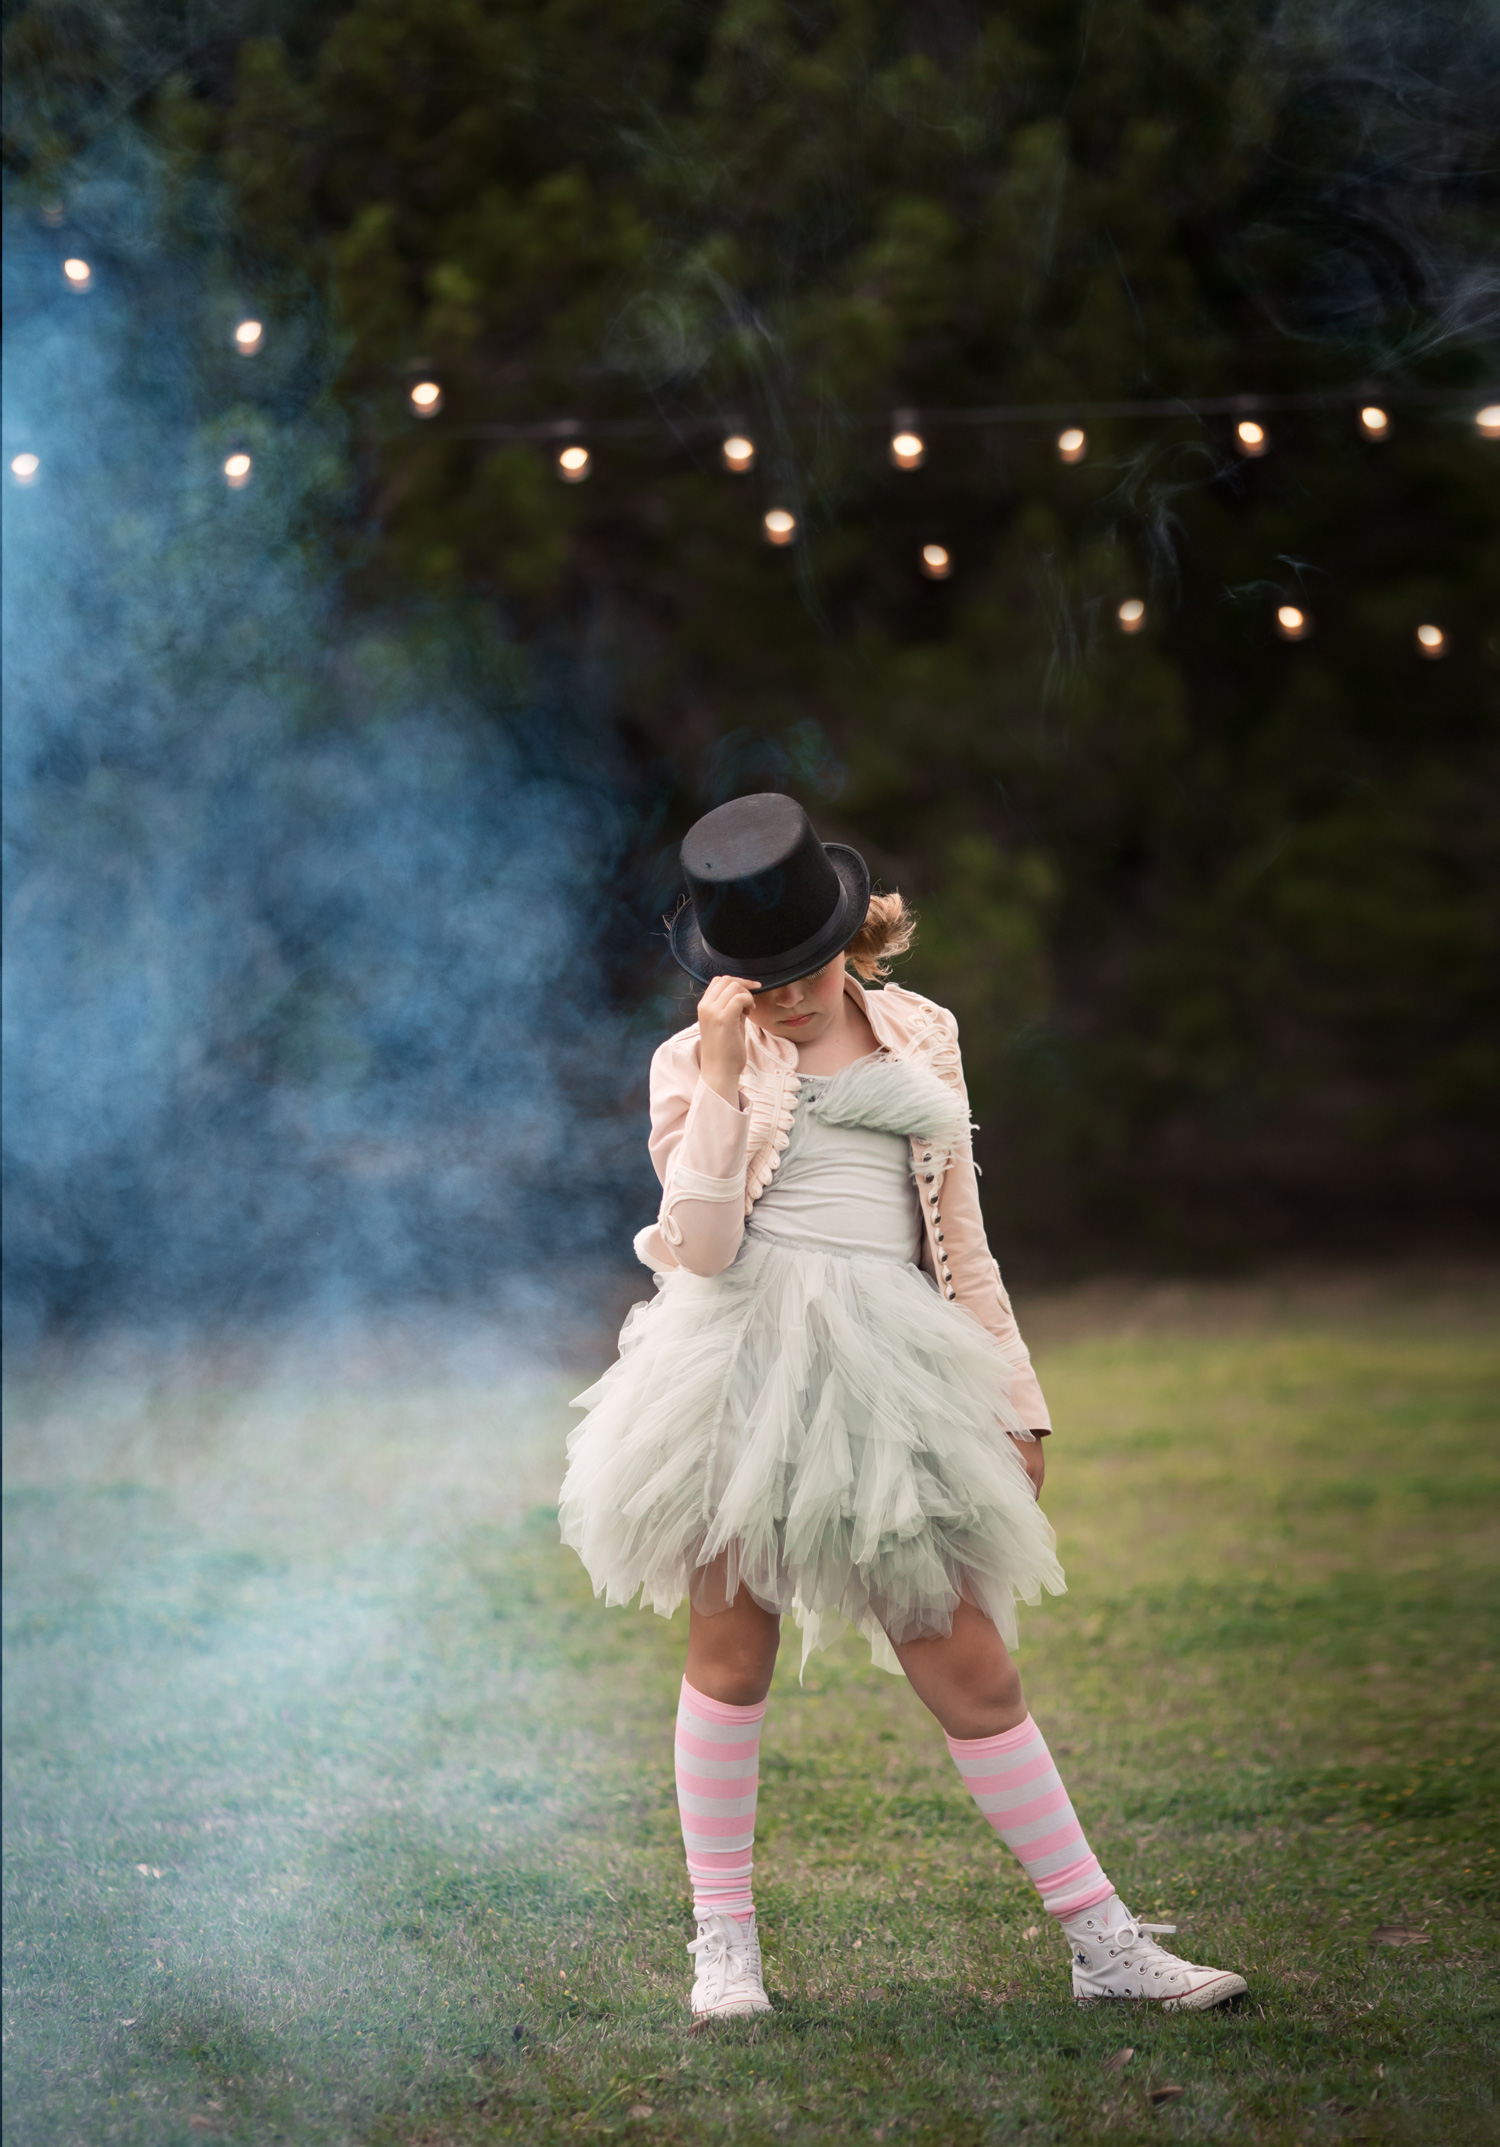 Image by Chubby Cheeks Photography